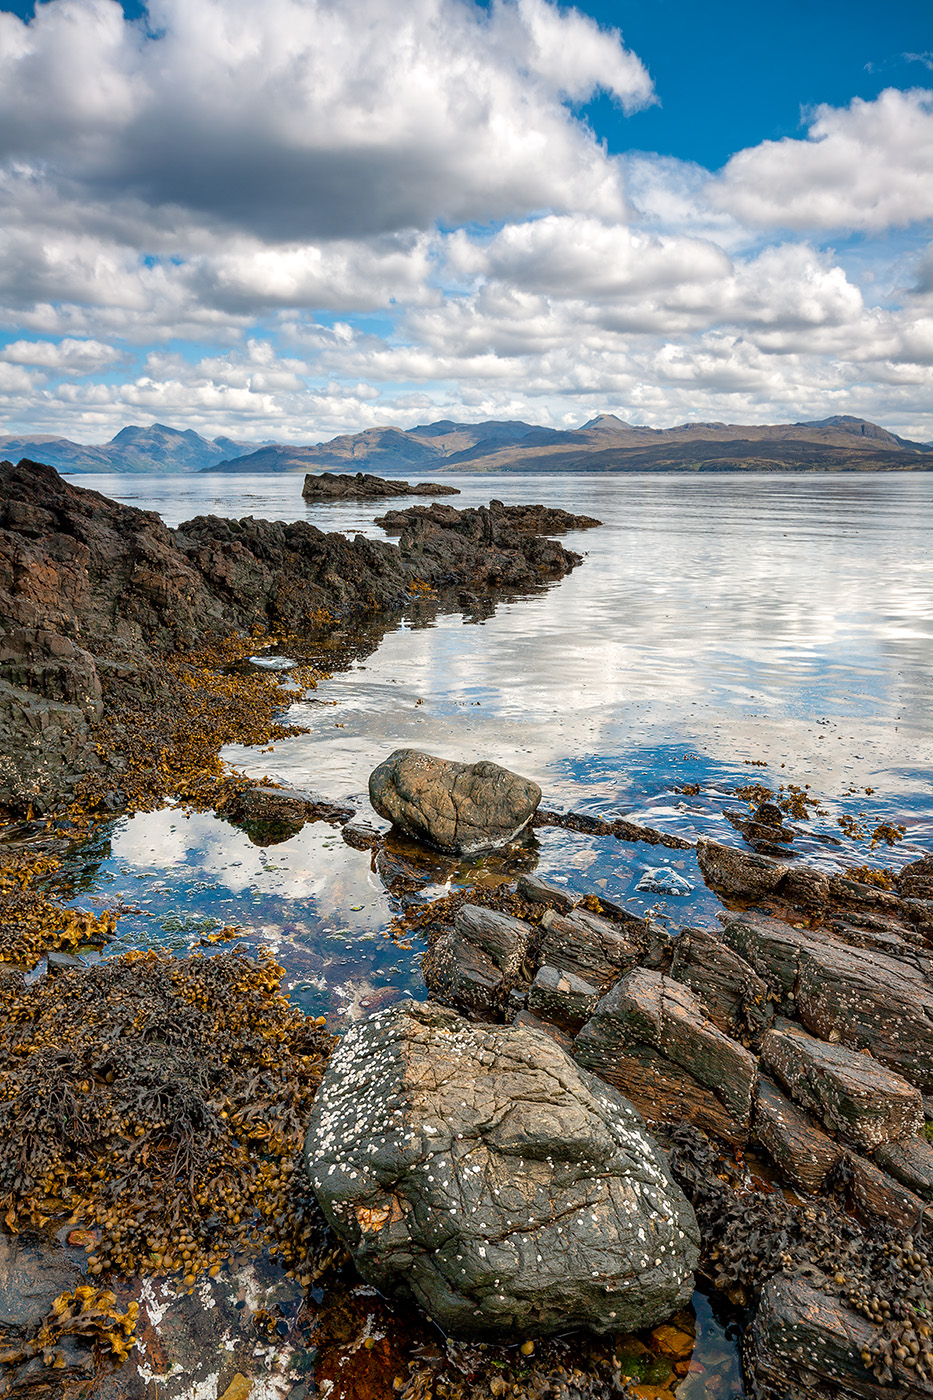 Views across the Sound of Sleat from Ardvasar, Skye